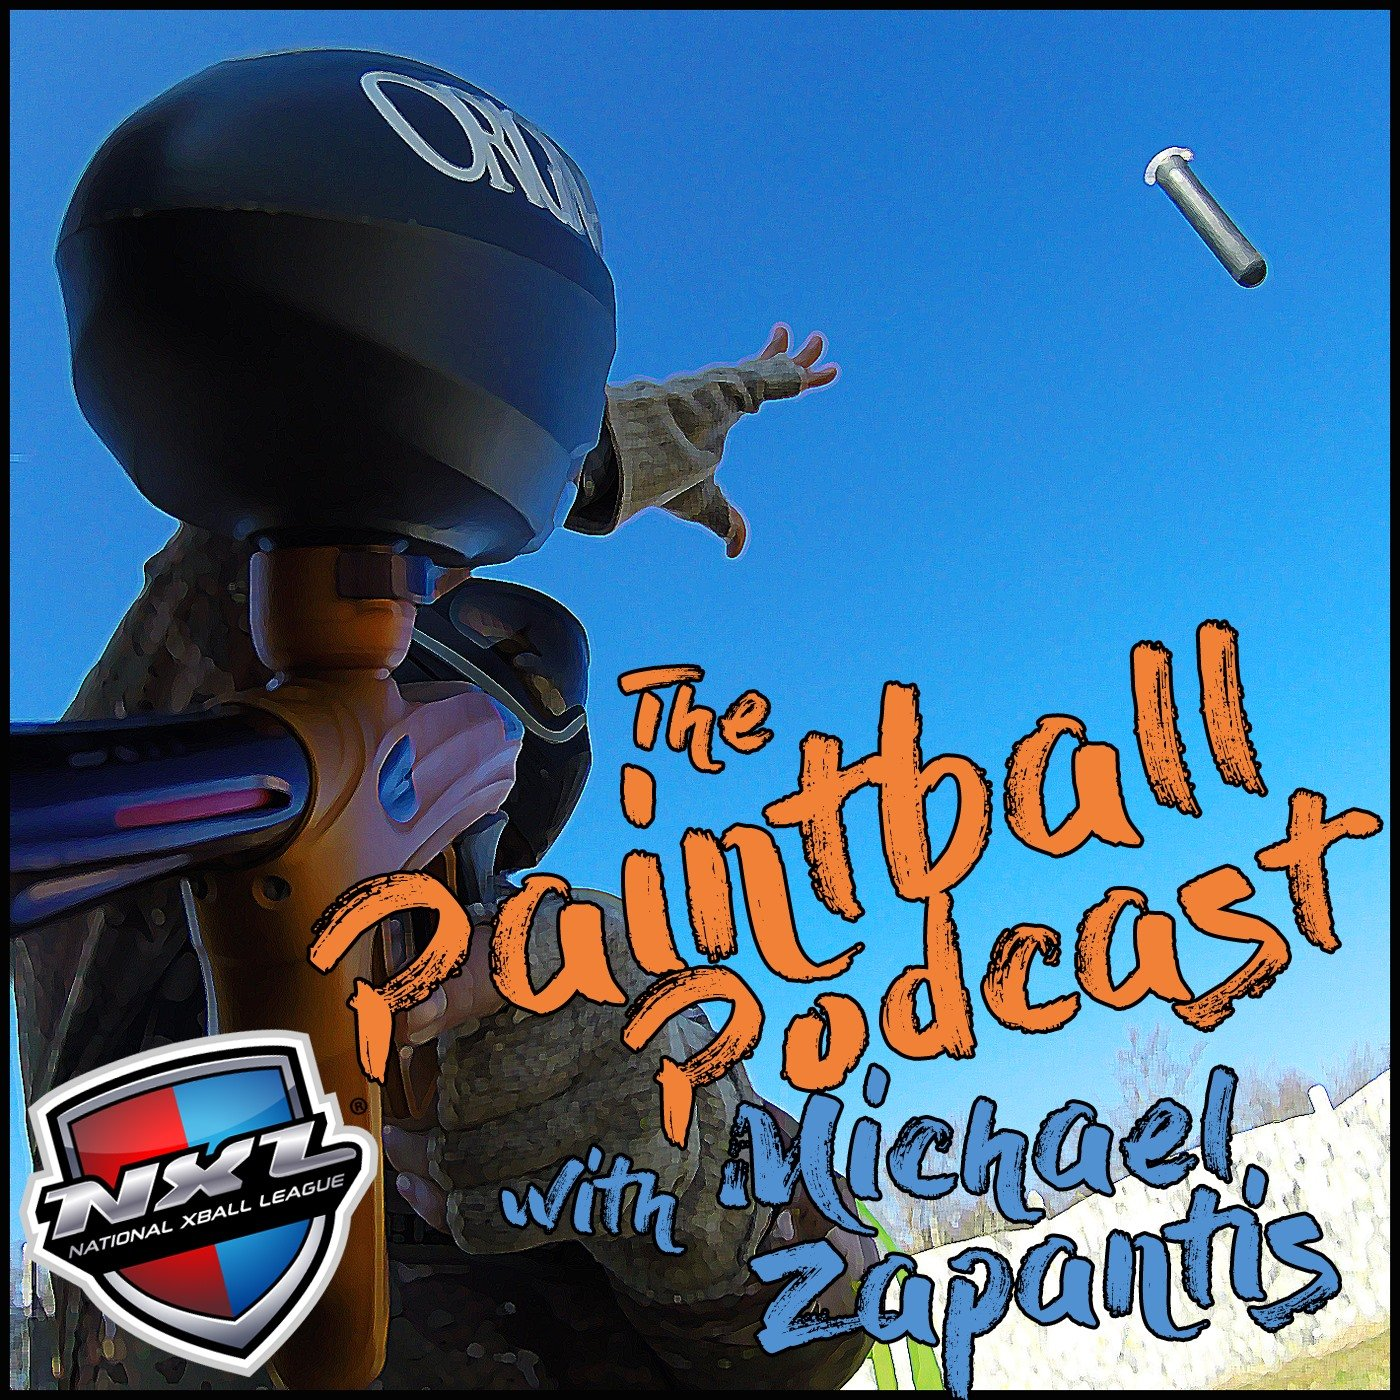 The Paintball Podcast